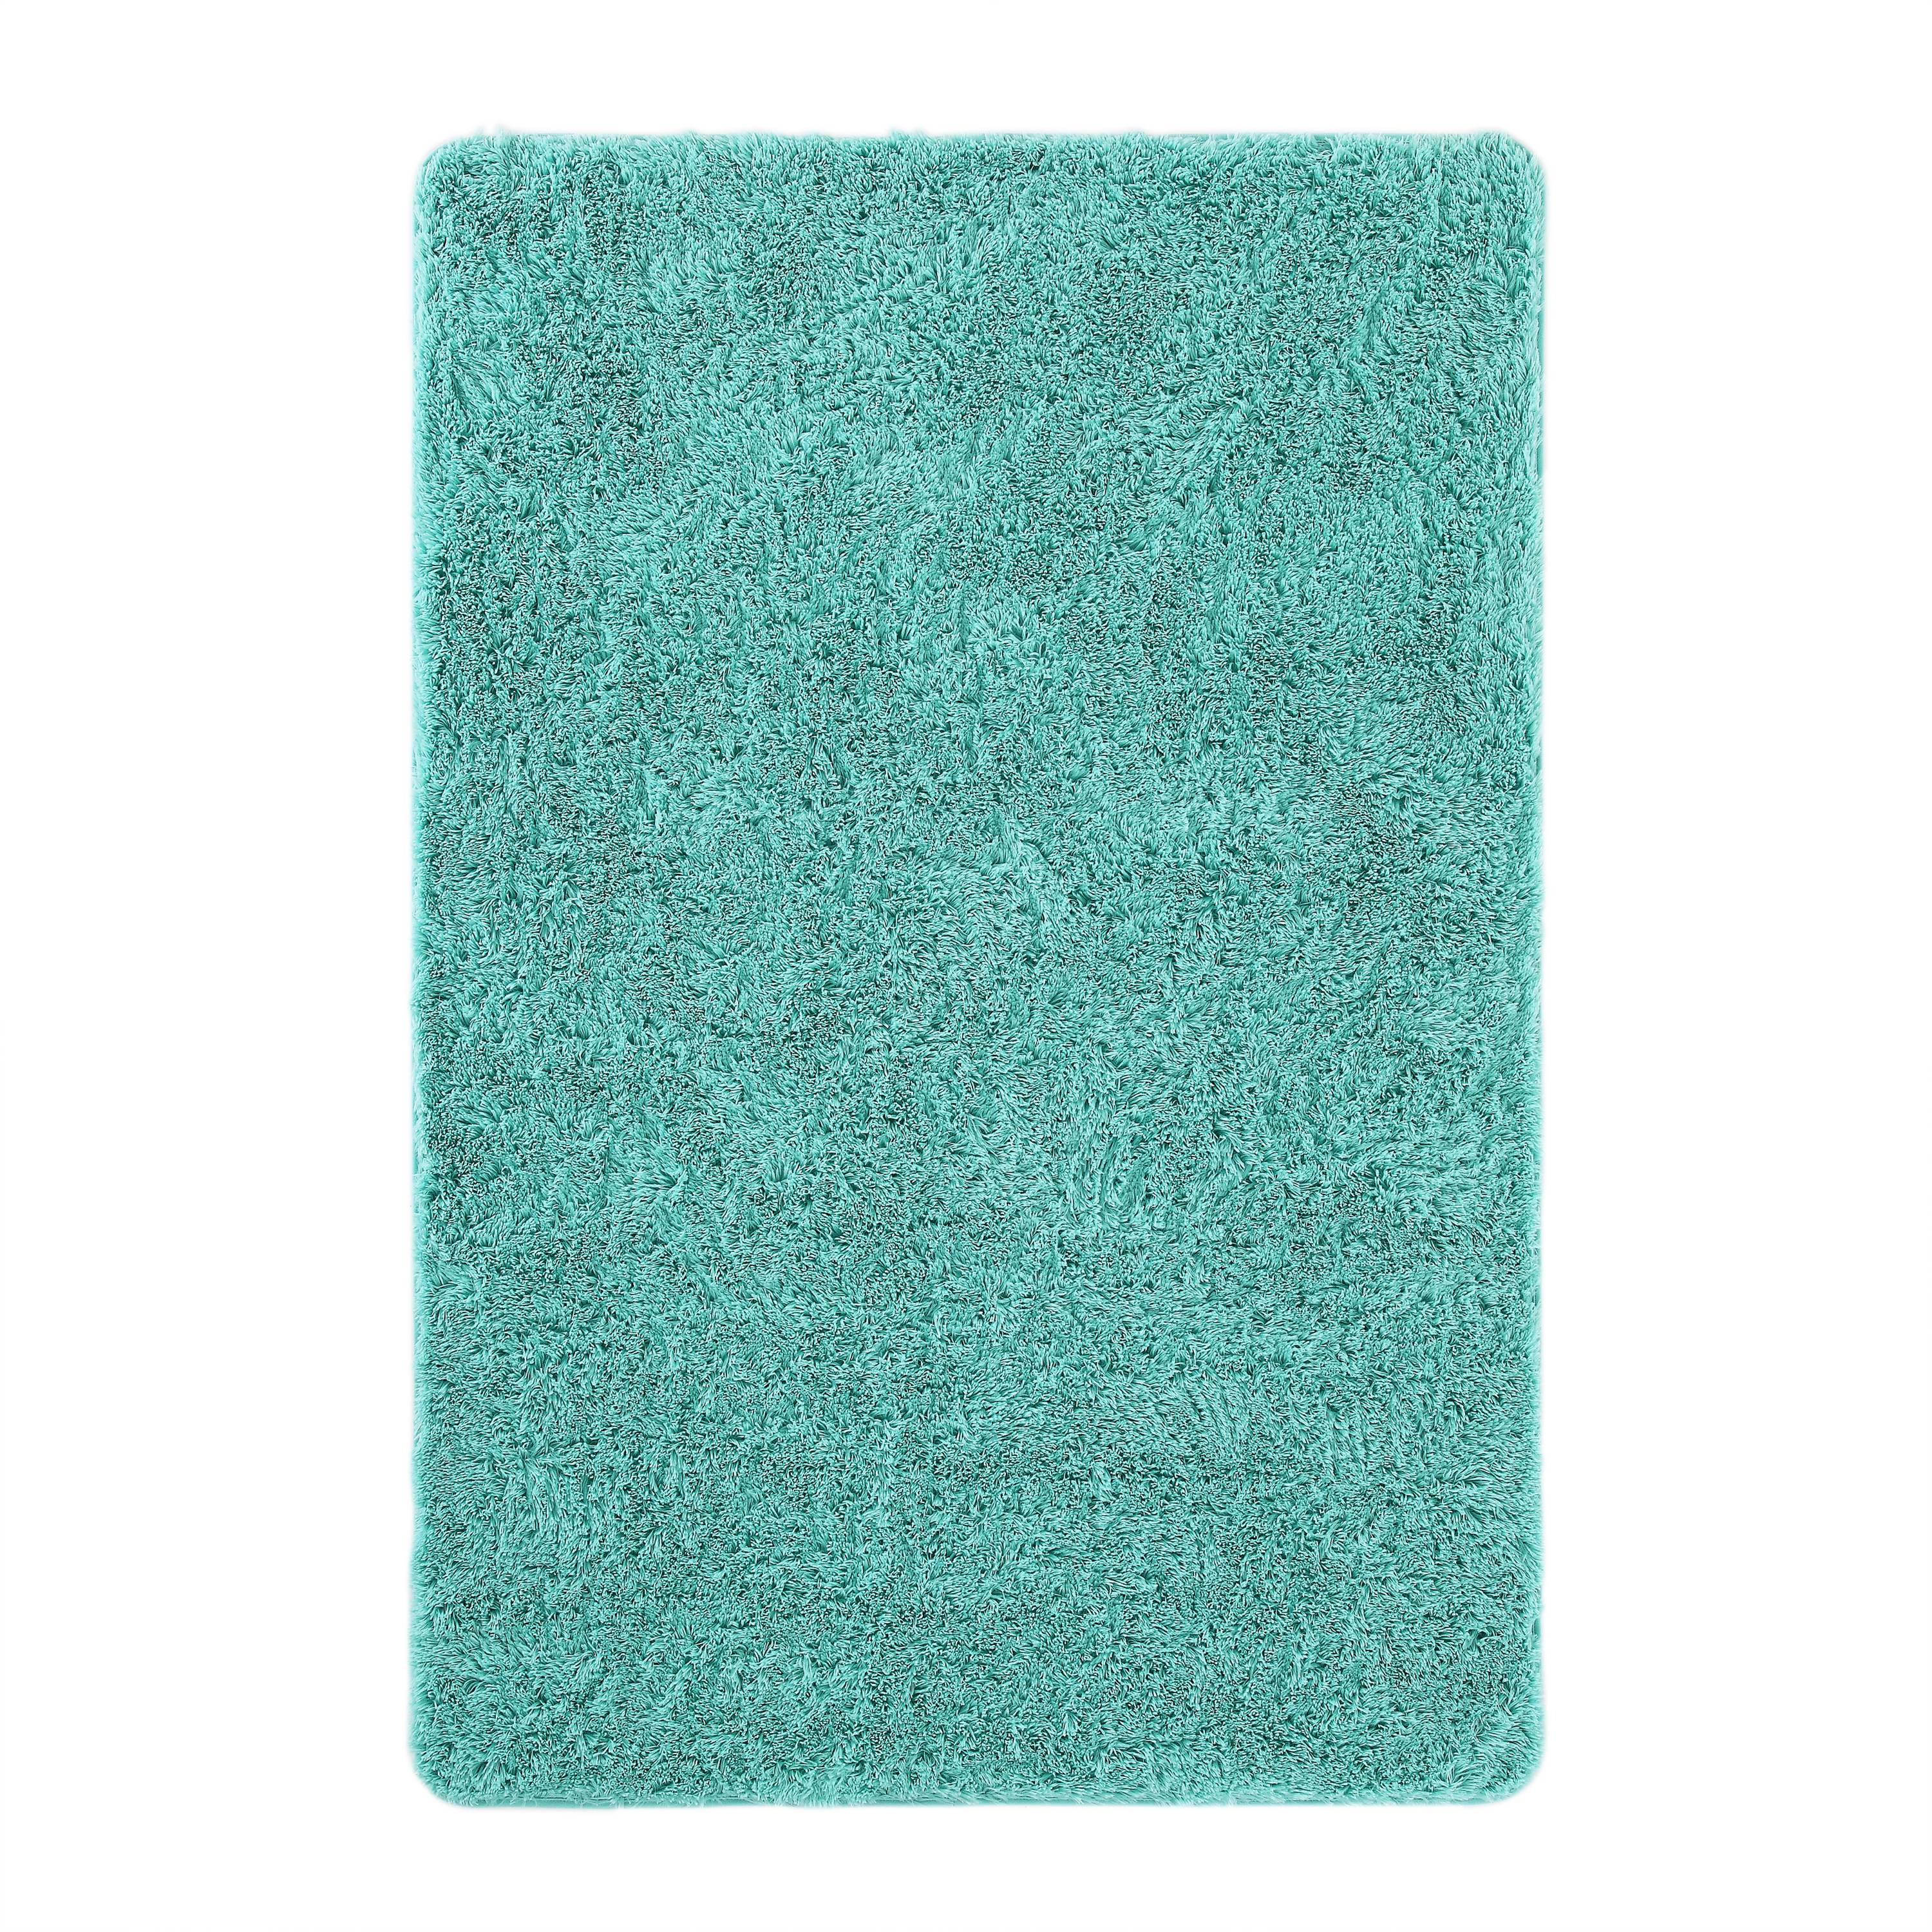 Mainstays Fuzzy Shag Area Rug, Multiple Colors and Sizes Available